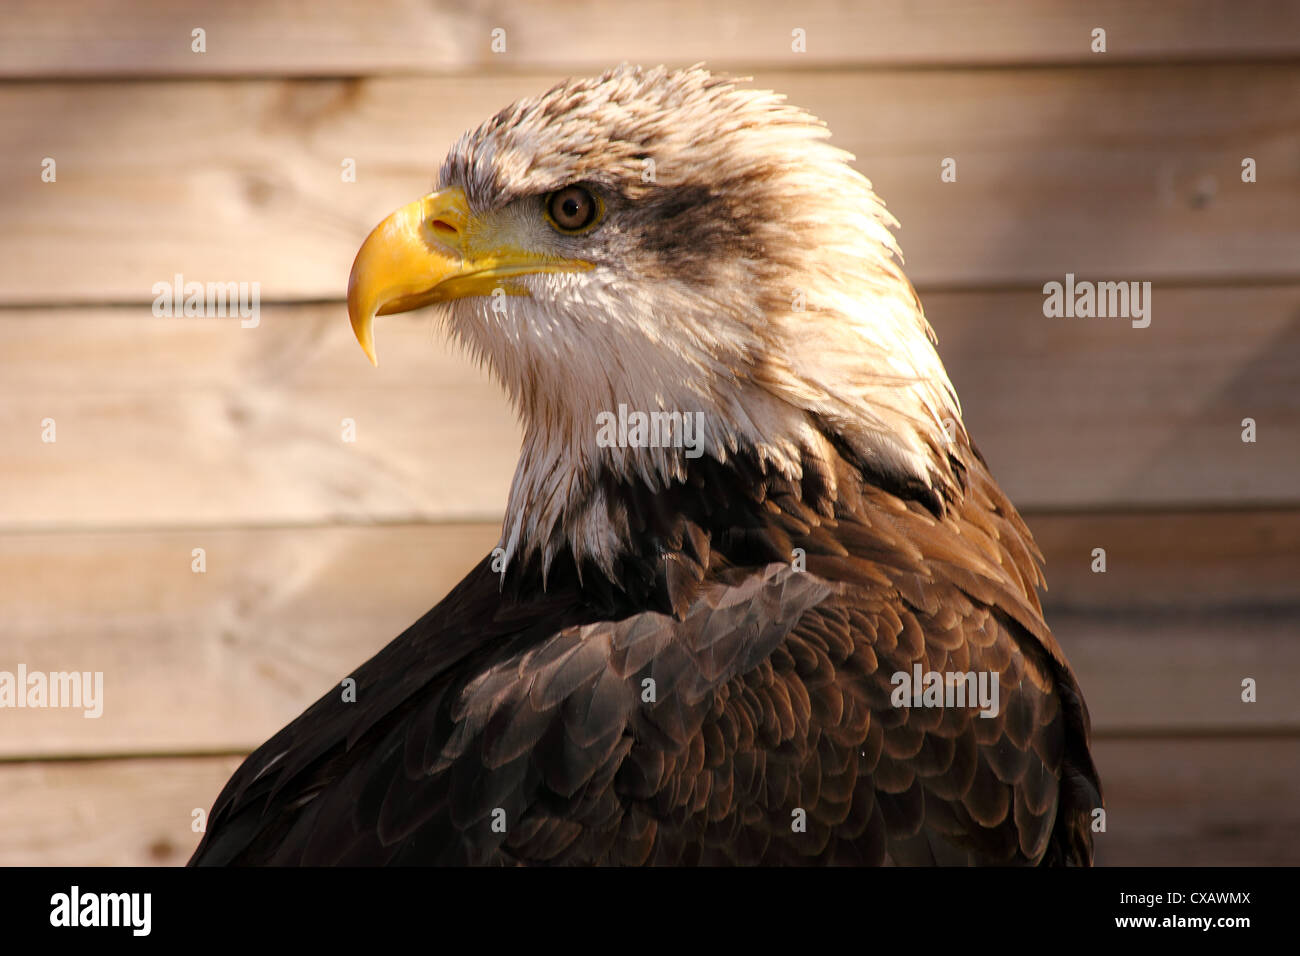 African fish eagle (Haliaeetus vocifer) or to distinguish it from the true fish eagles (Ichthyophaga) - Stock Image